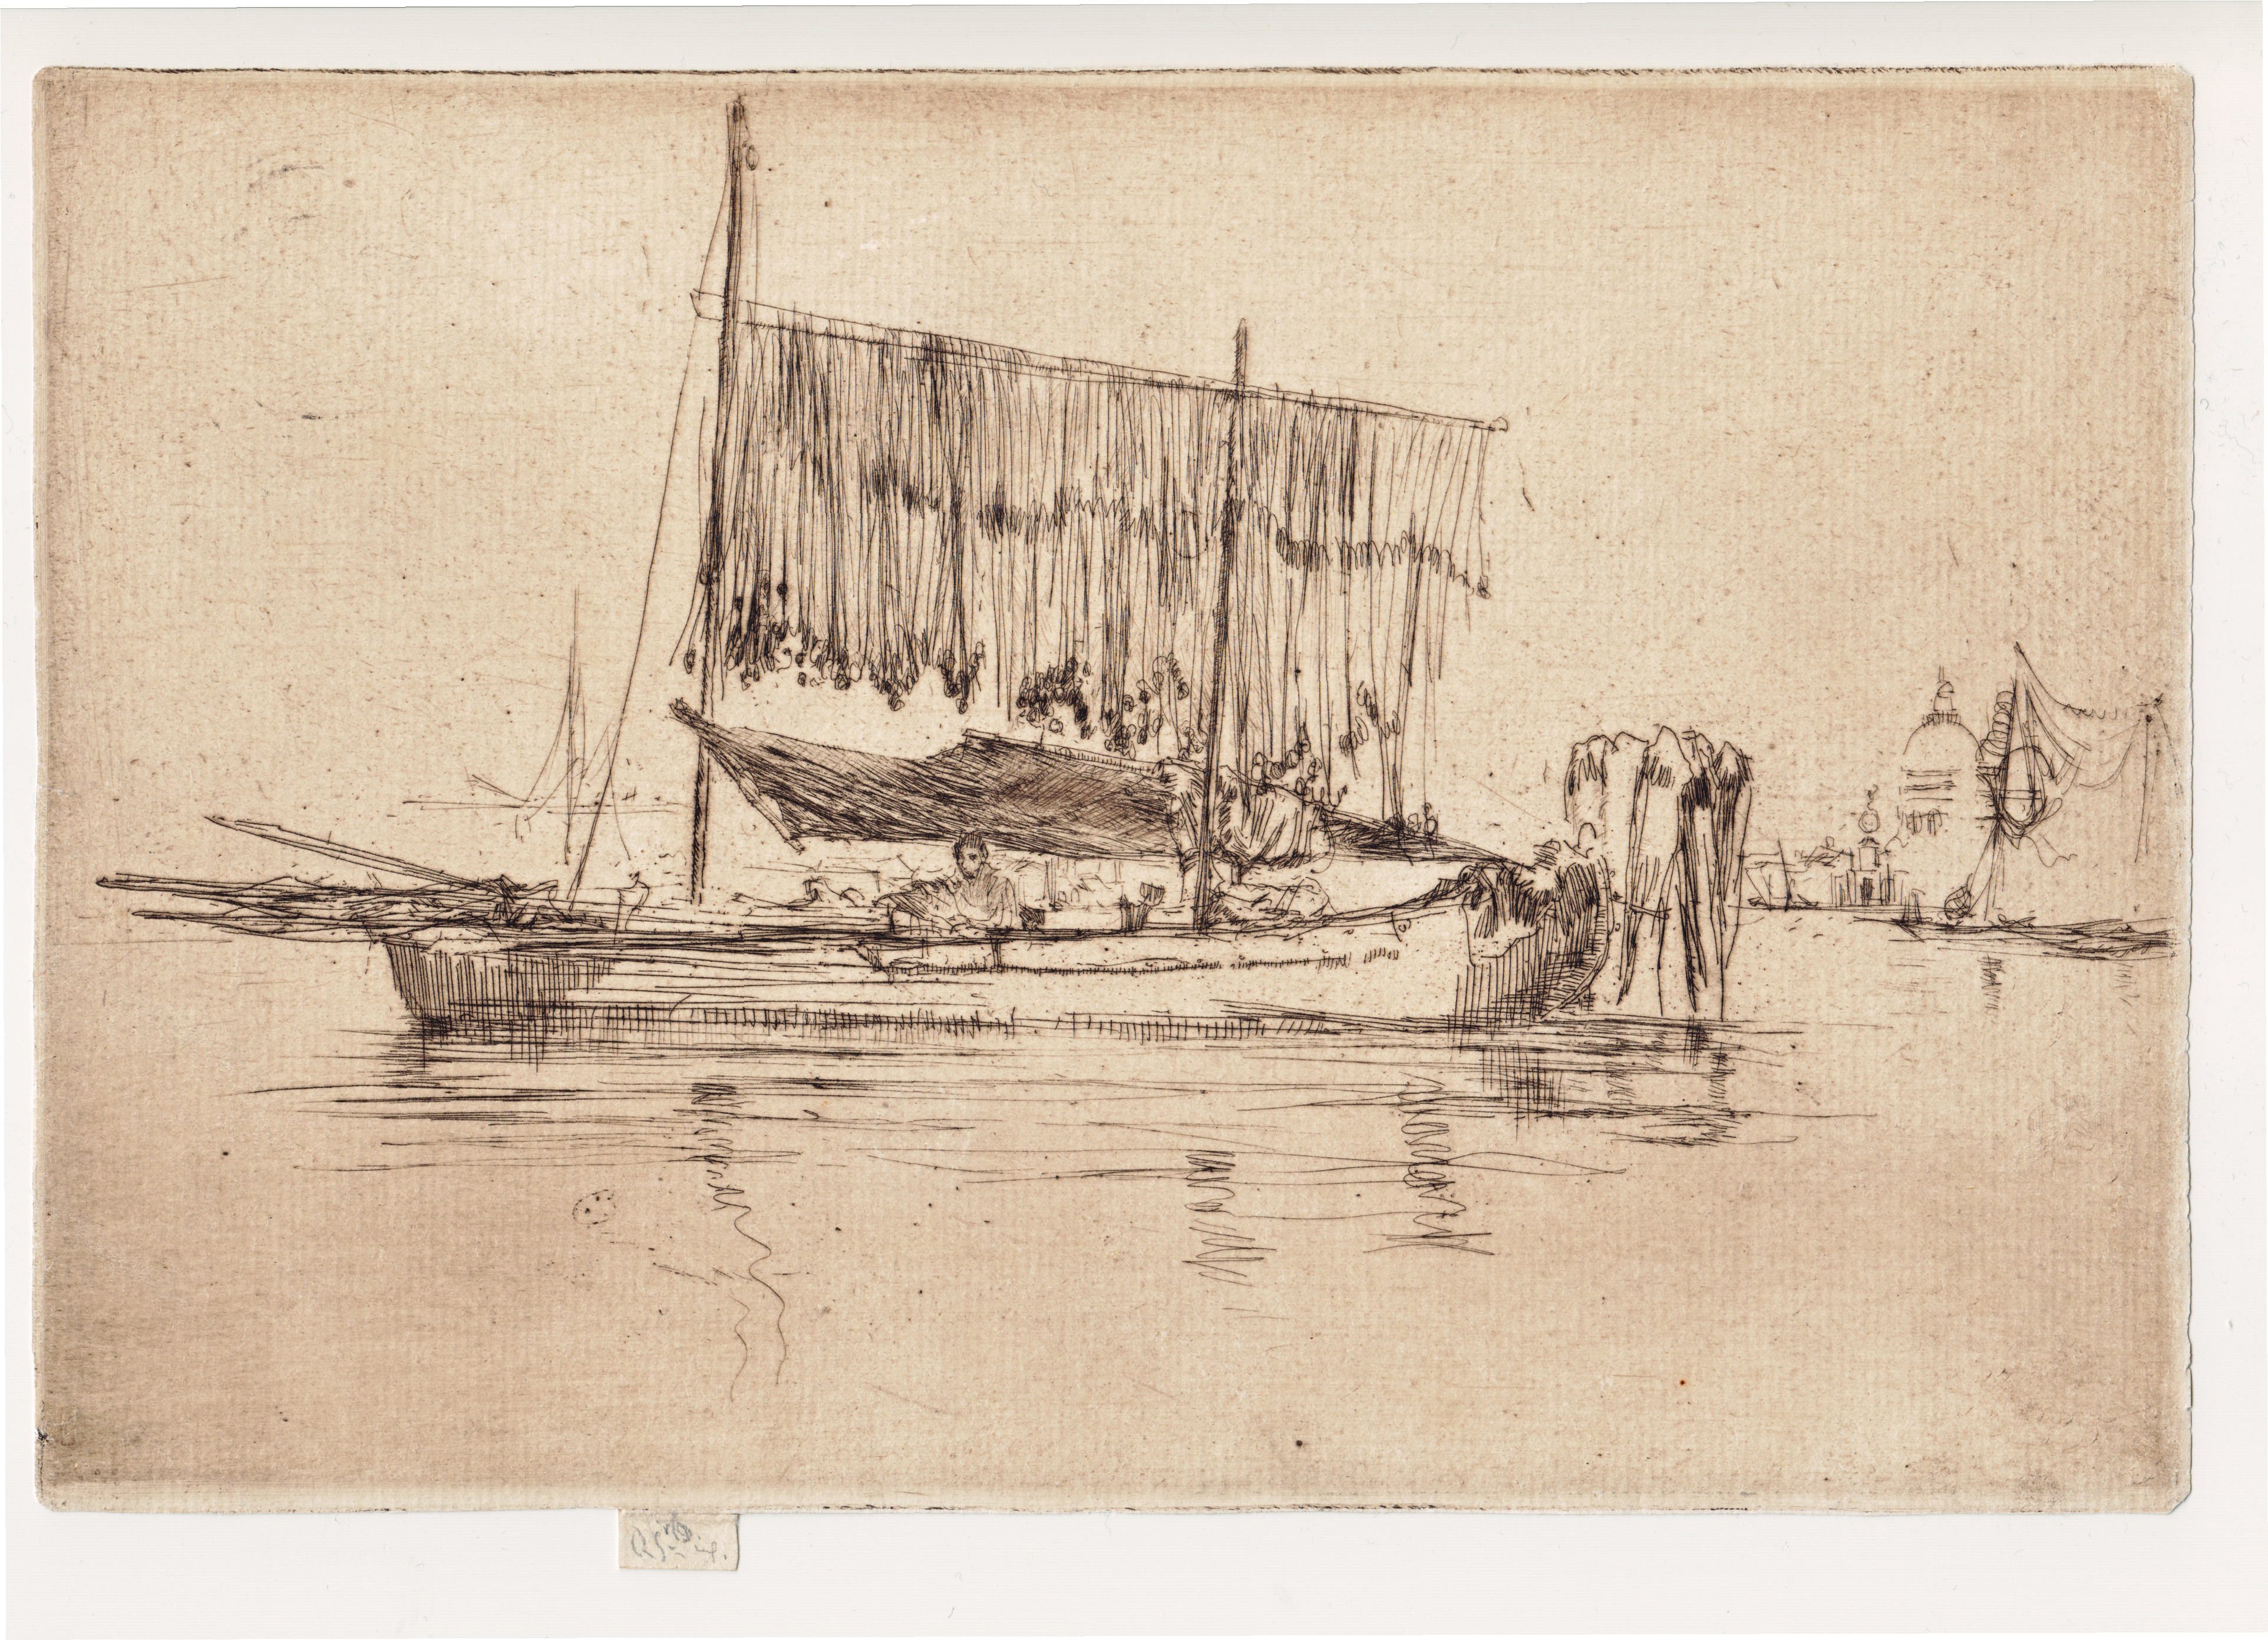 James McNeill Whistler, Fishing Boat, etching, 1879-1880